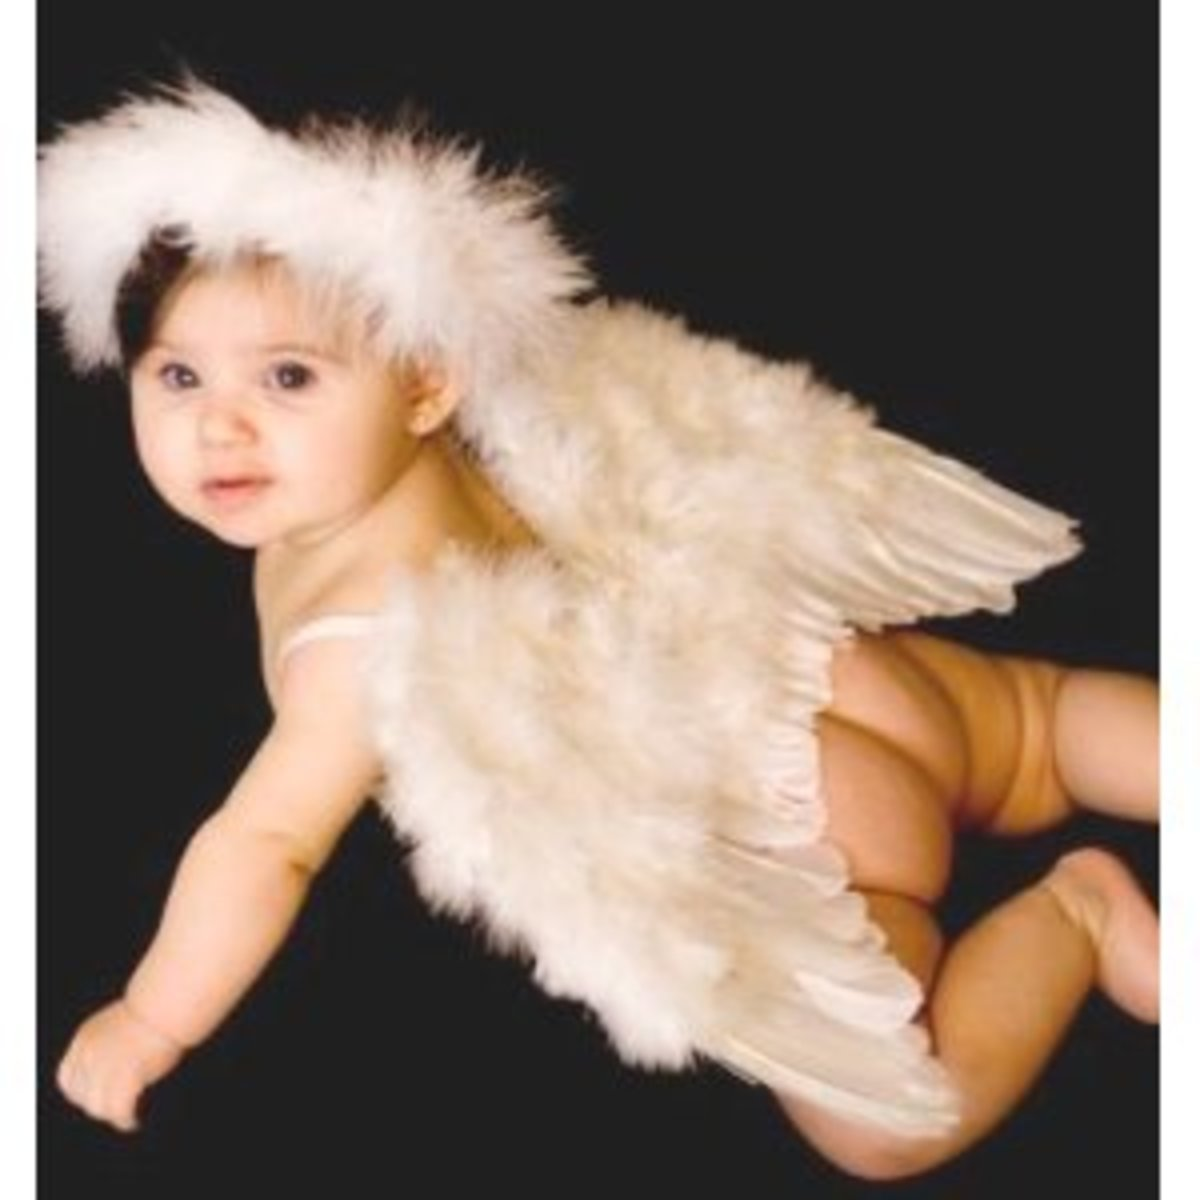 Celebrate Baby's first Halloween with this gorgeous baby angel costume.